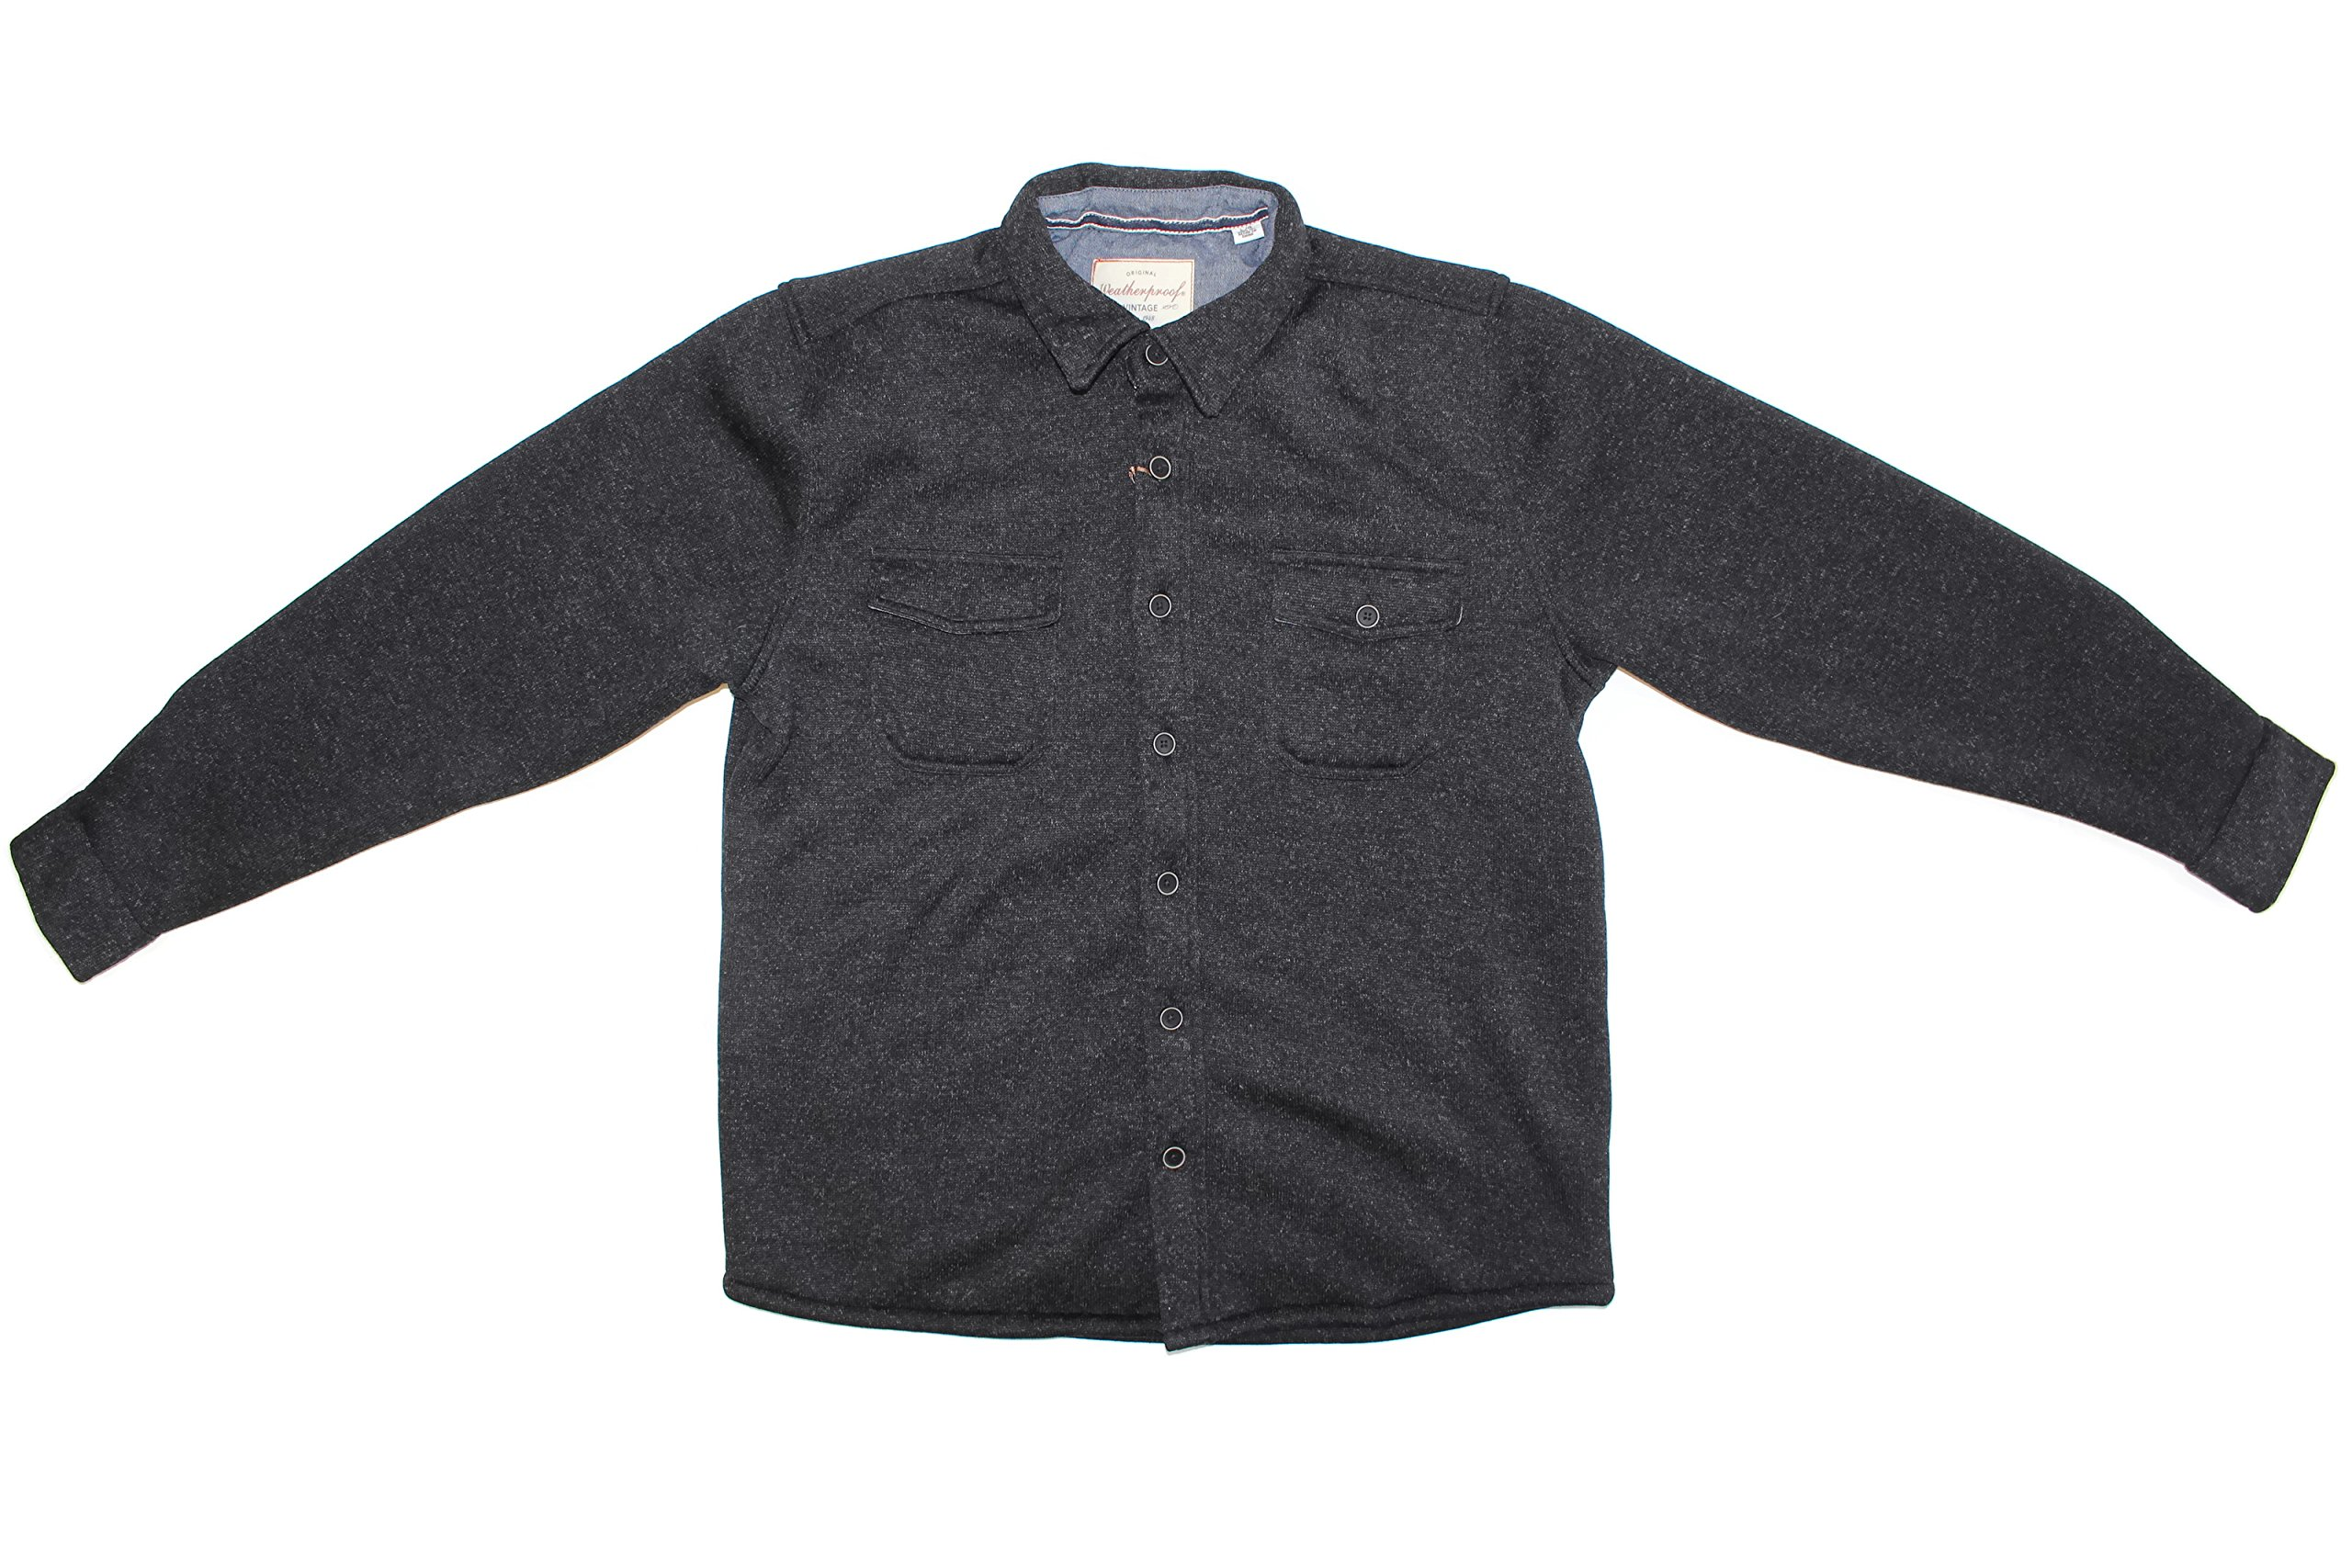 Weatherproof Vintage Men's Sweater Fleece Shirt Black (Heather Grey, Large)